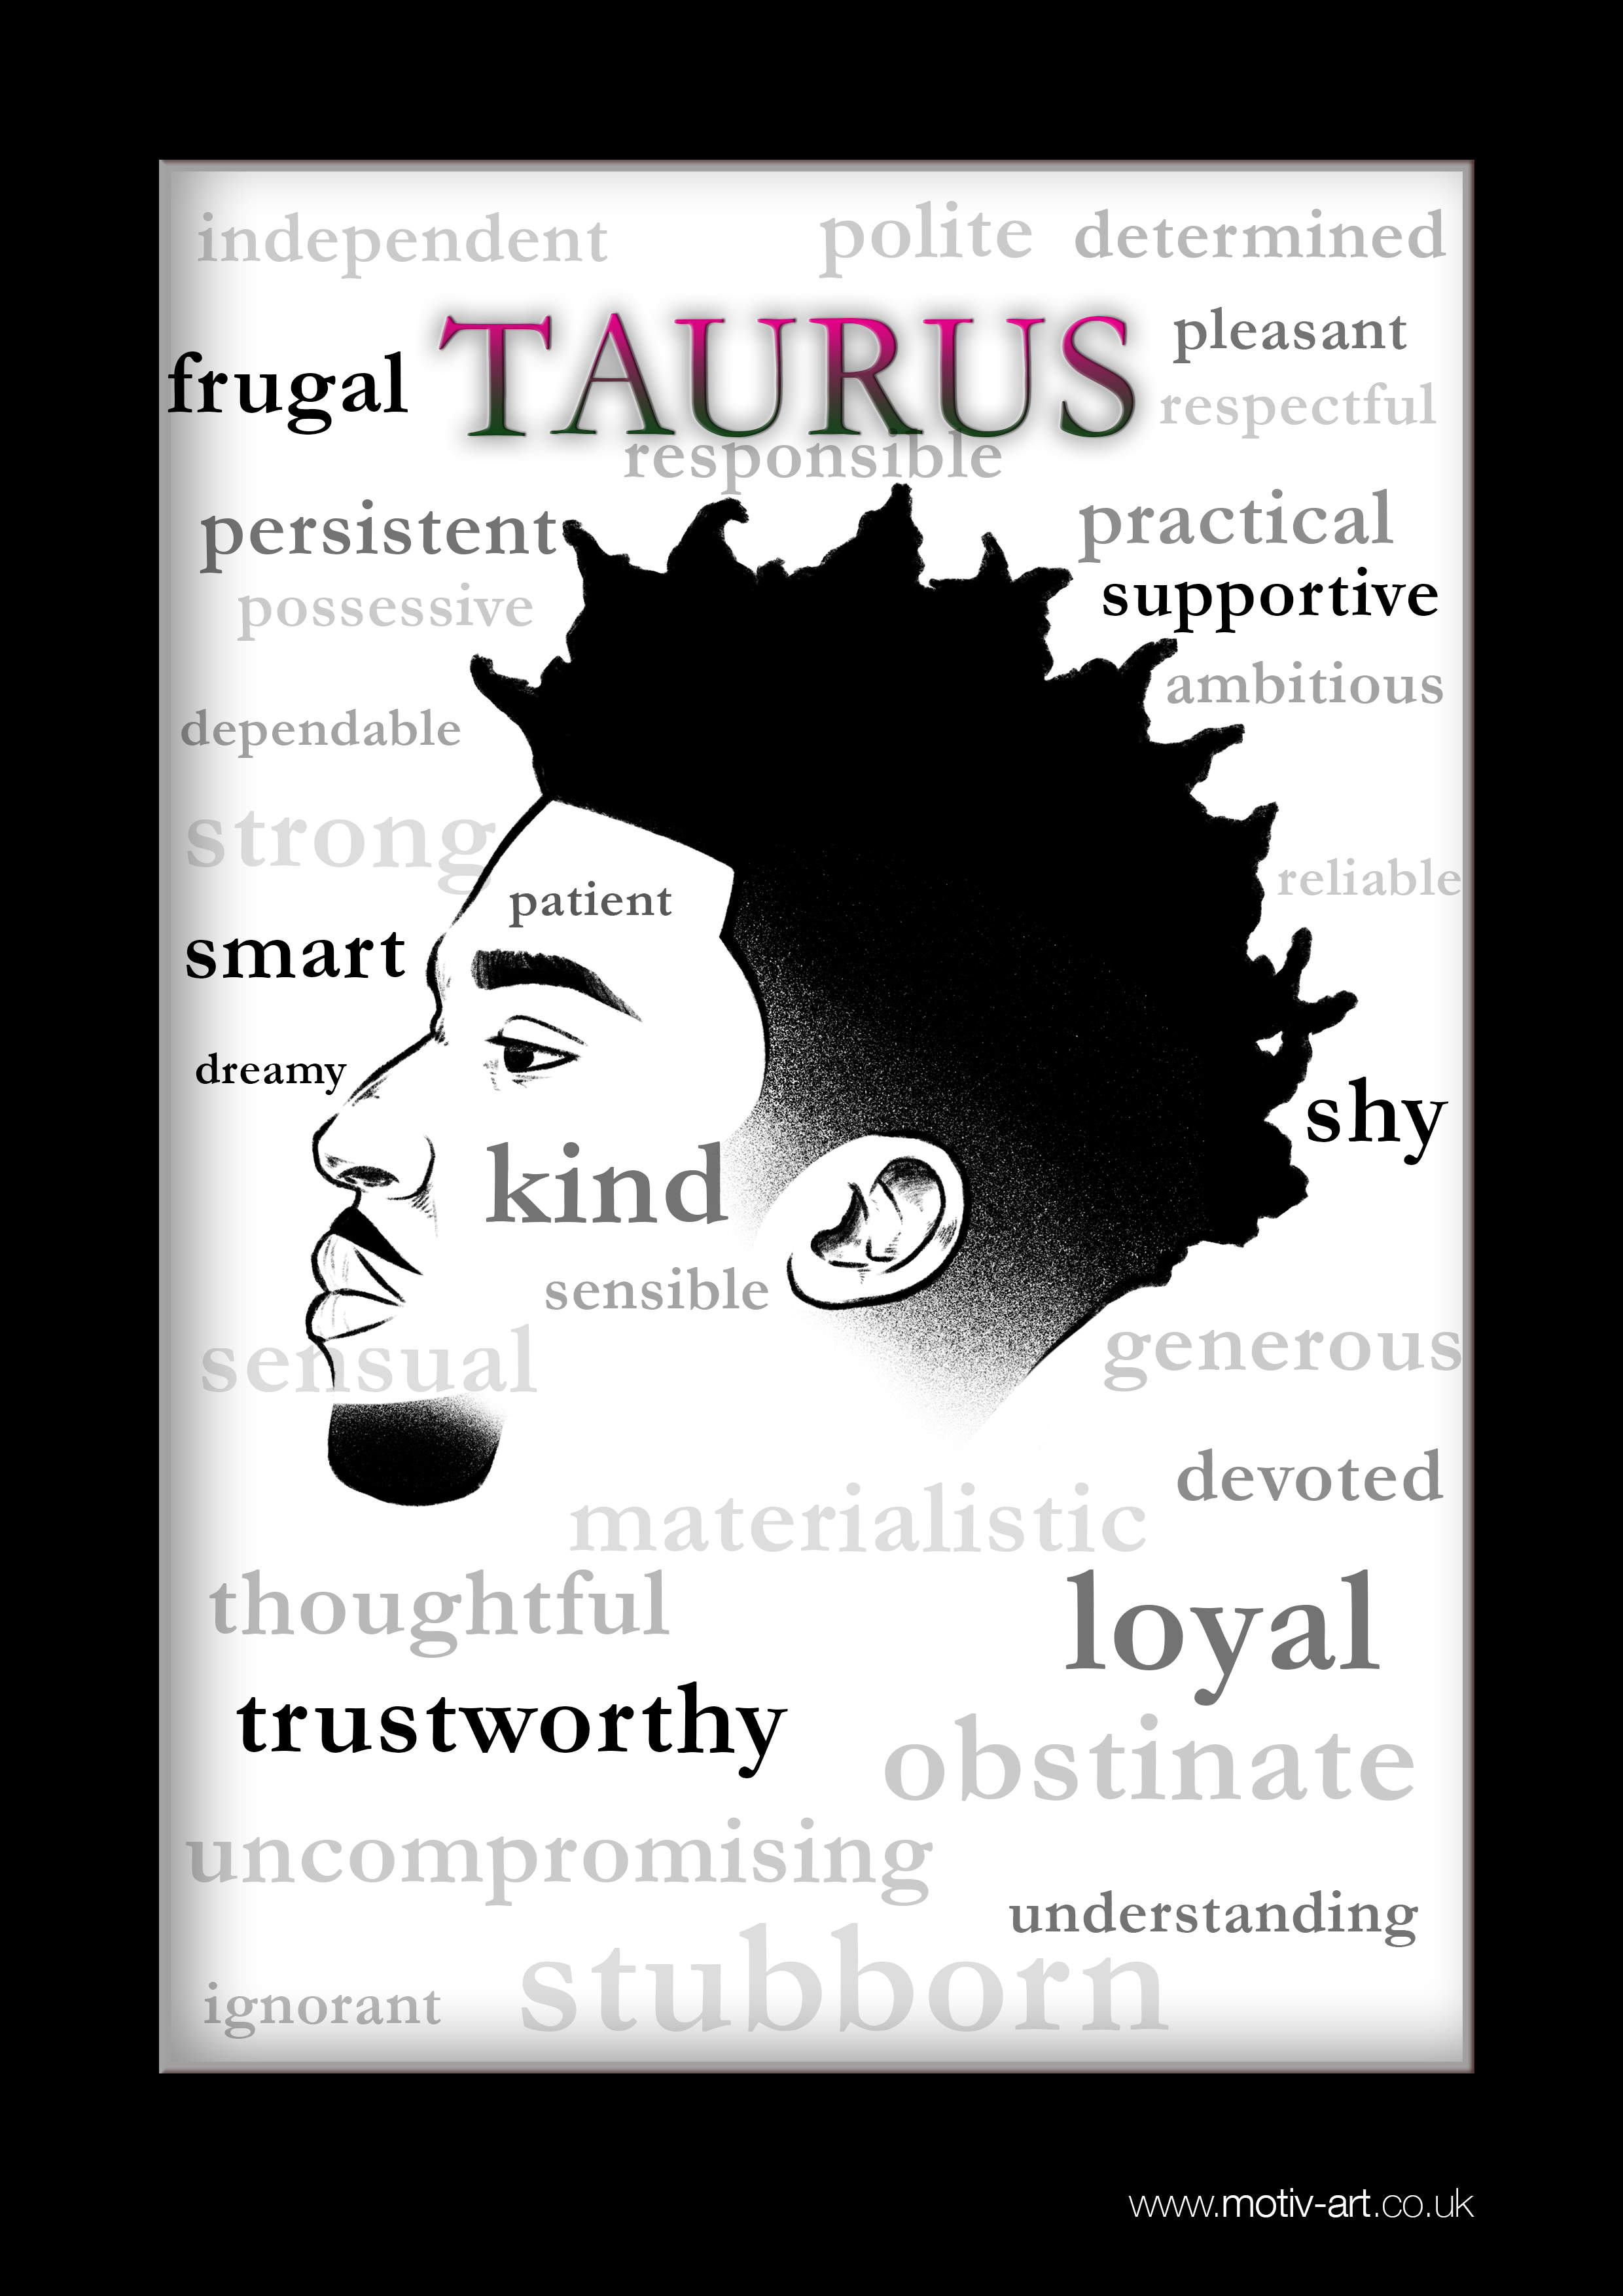 Taurus - 21 Apr - 21 May